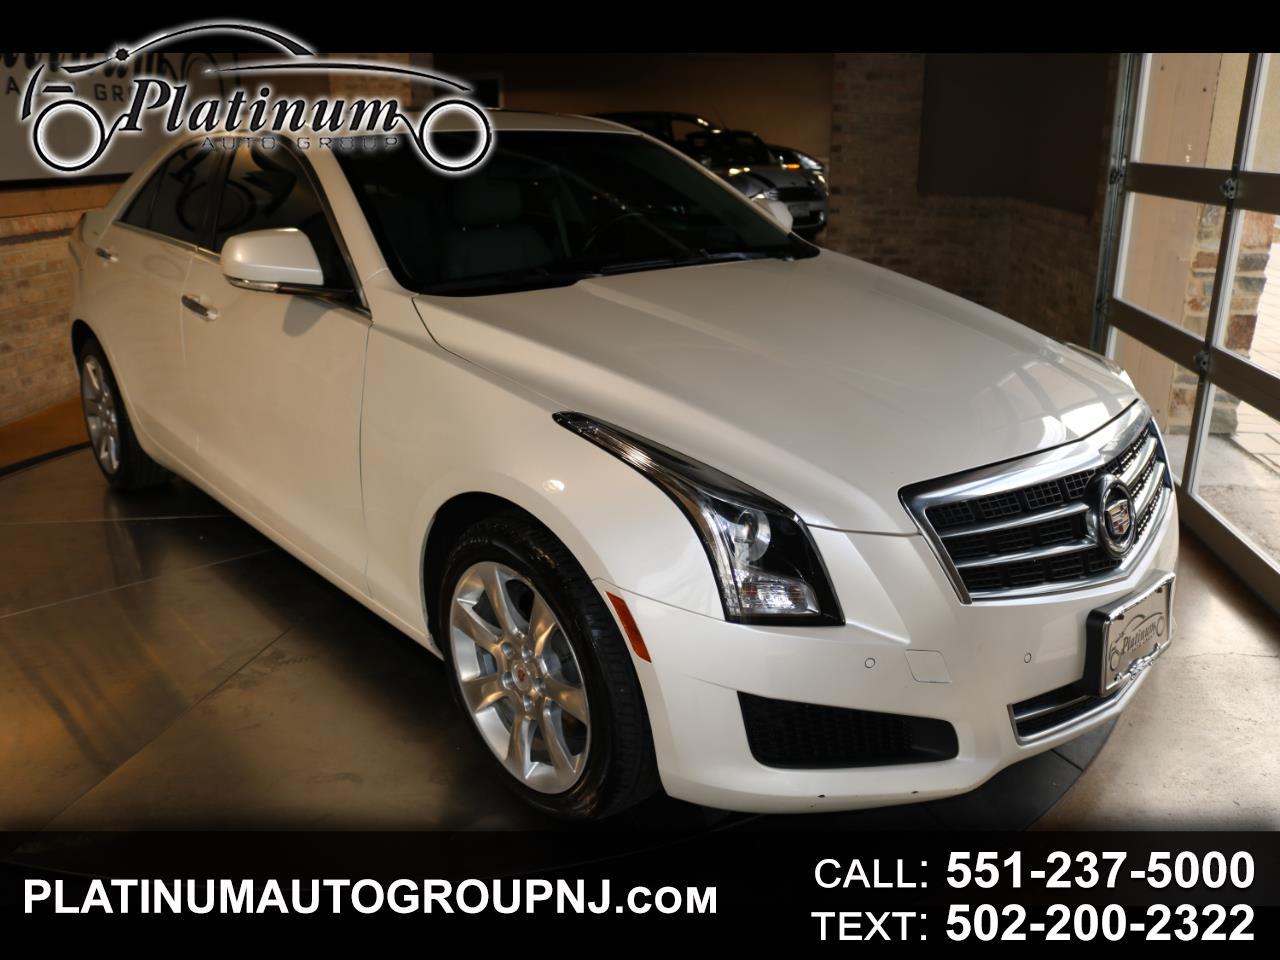 Cadillac ATS 4dr Sdn 2.0L Luxury AWD 2014